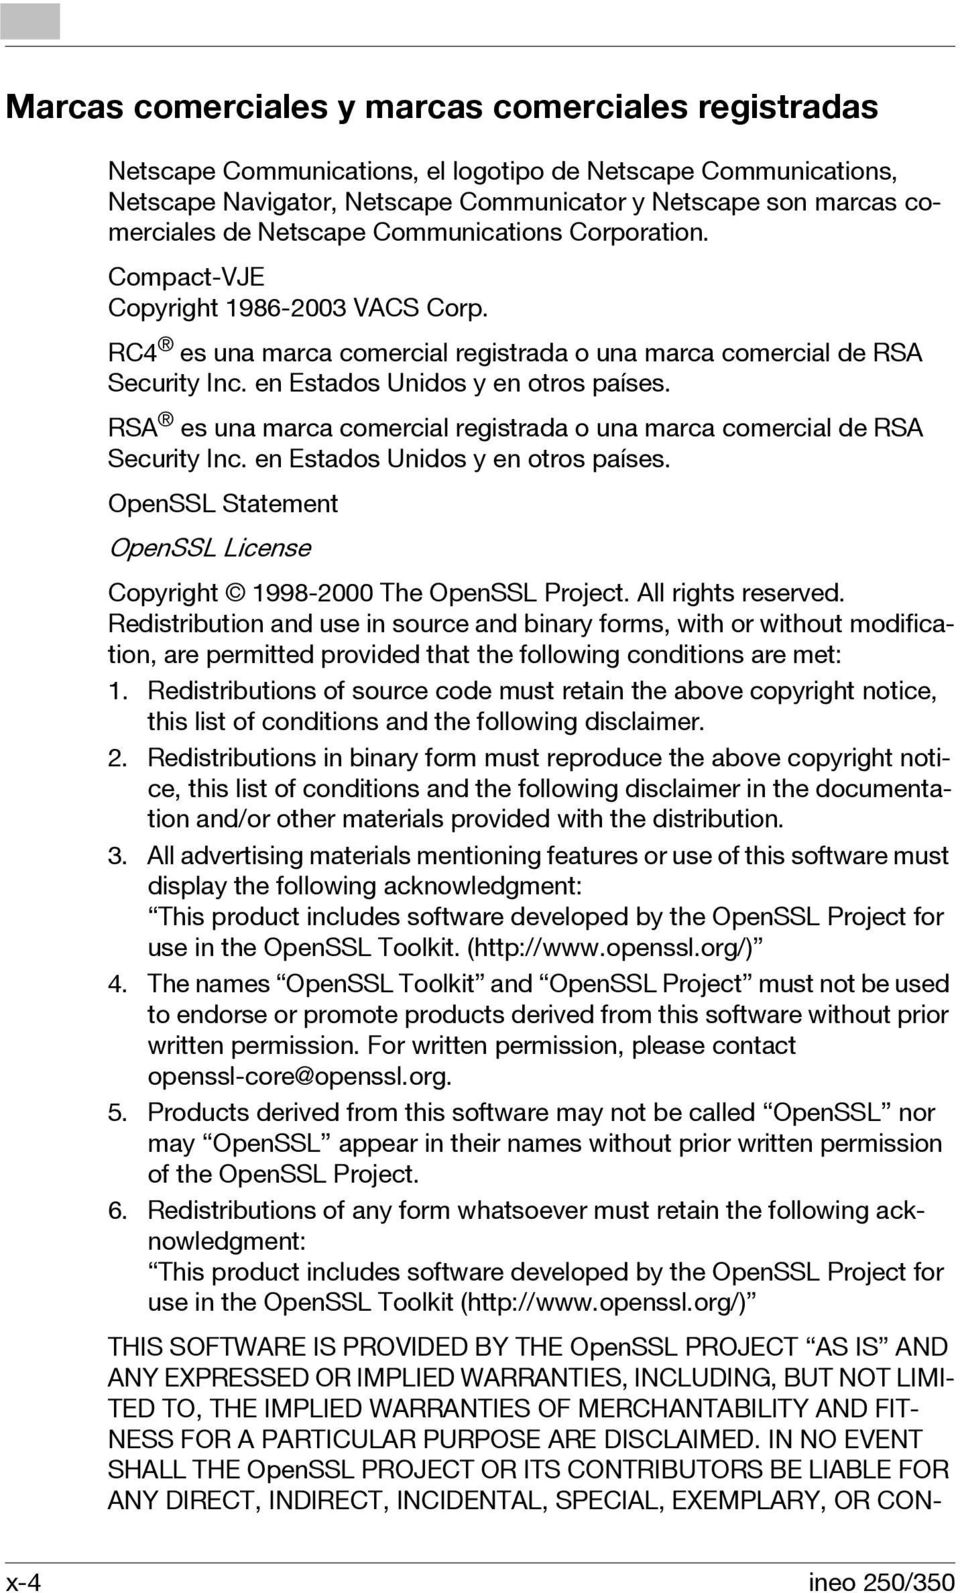 RSA es una marca comercial registrada o una marca comercial de RSA Security Inc. en Estados Unidos y en otros países. OpenSSL Statement OpenSSL License Copyright 1998-2000 The OpenSSL Project.